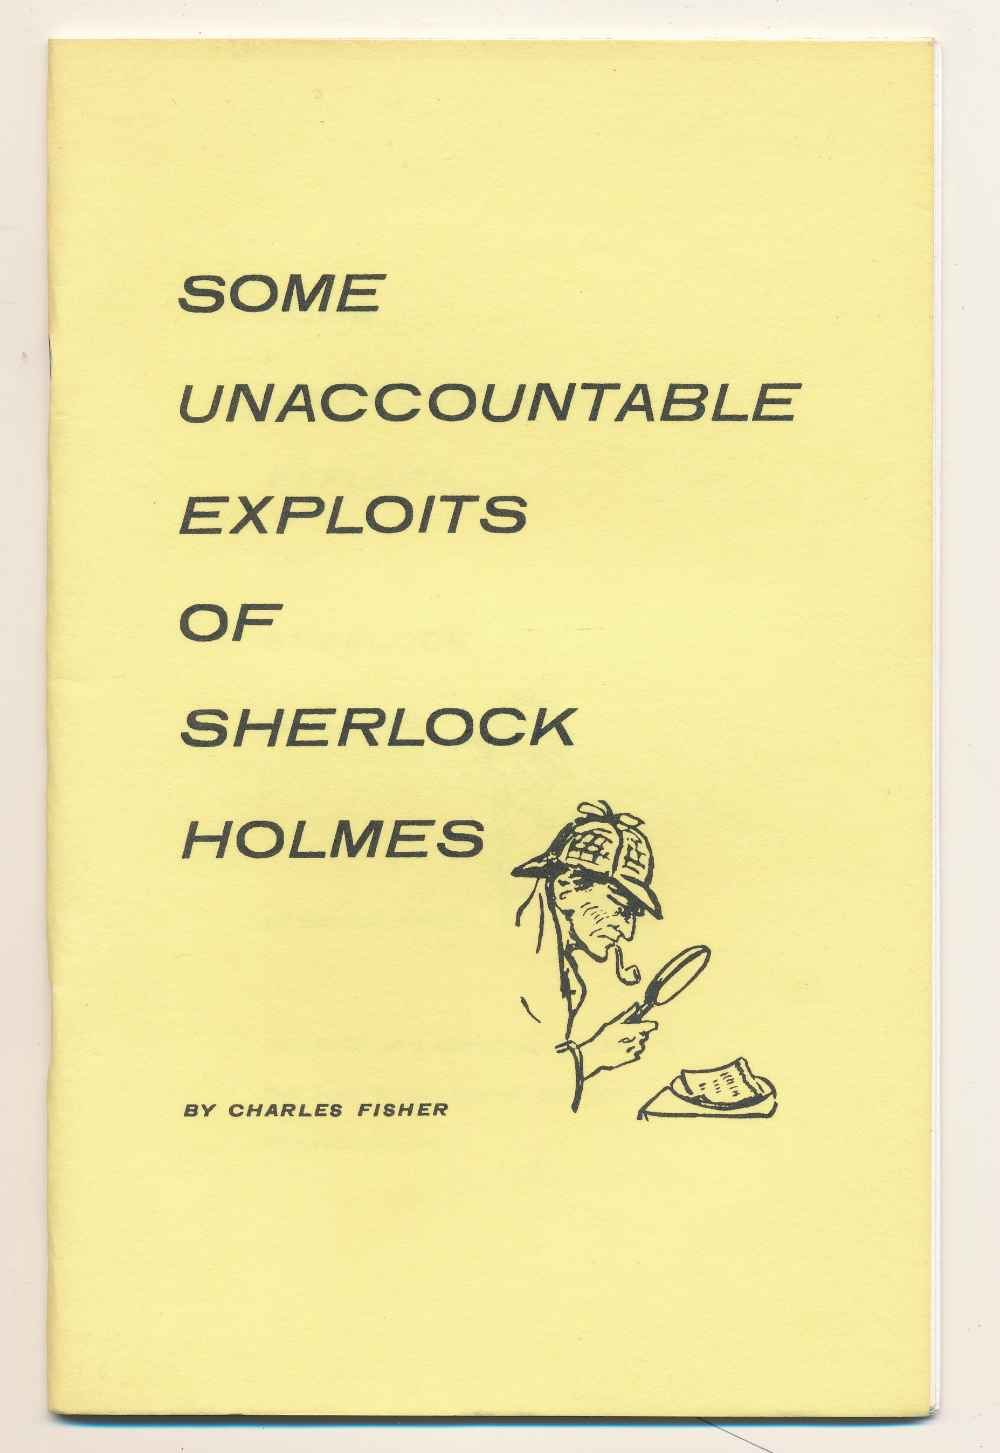 Some unaccountable exploits of Sherlock Holmes